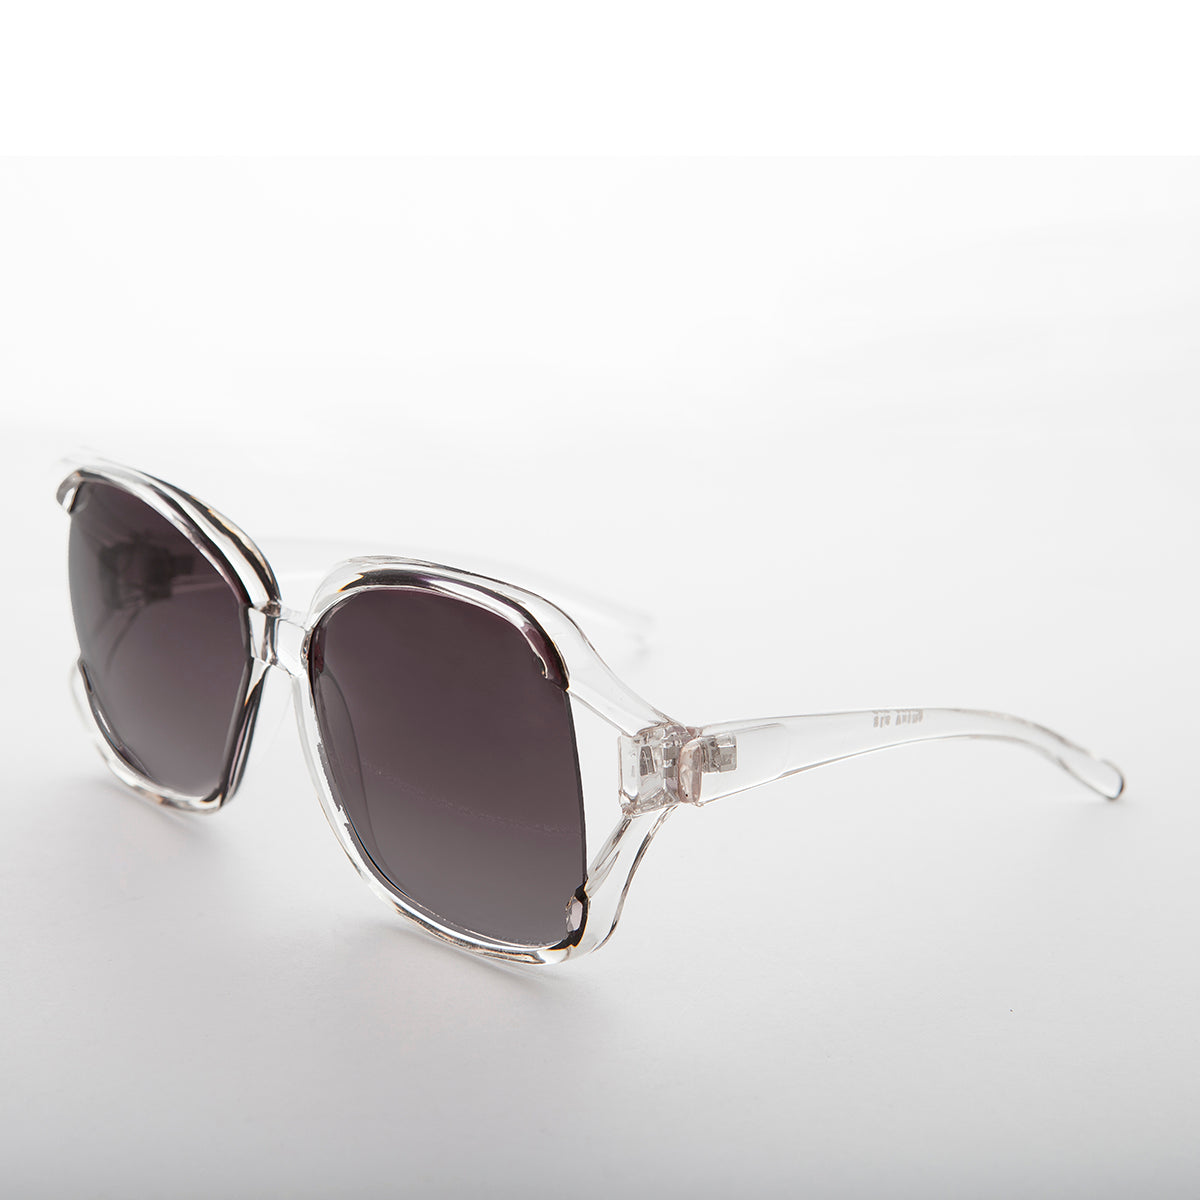 1980s oversized square clear frame women's vintage sunglass